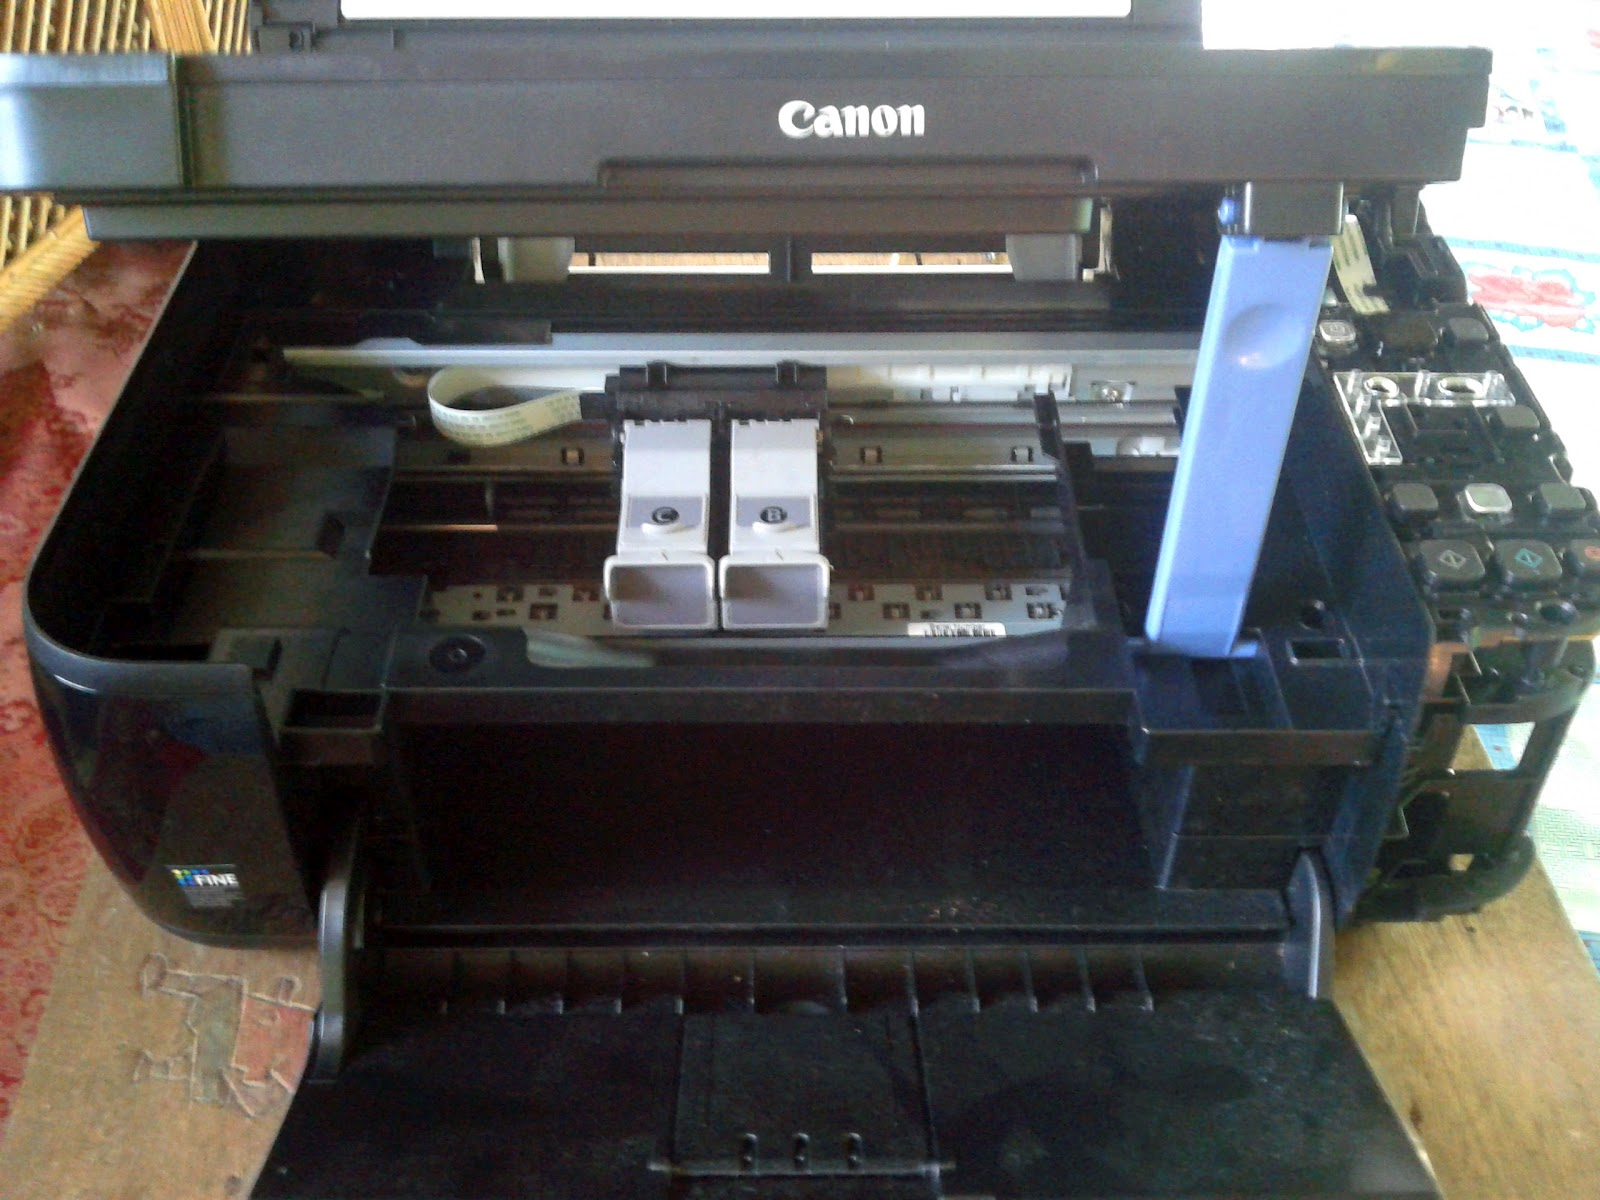 Pasang Infus Printer Pasang Infus Printer Canon Mp 287